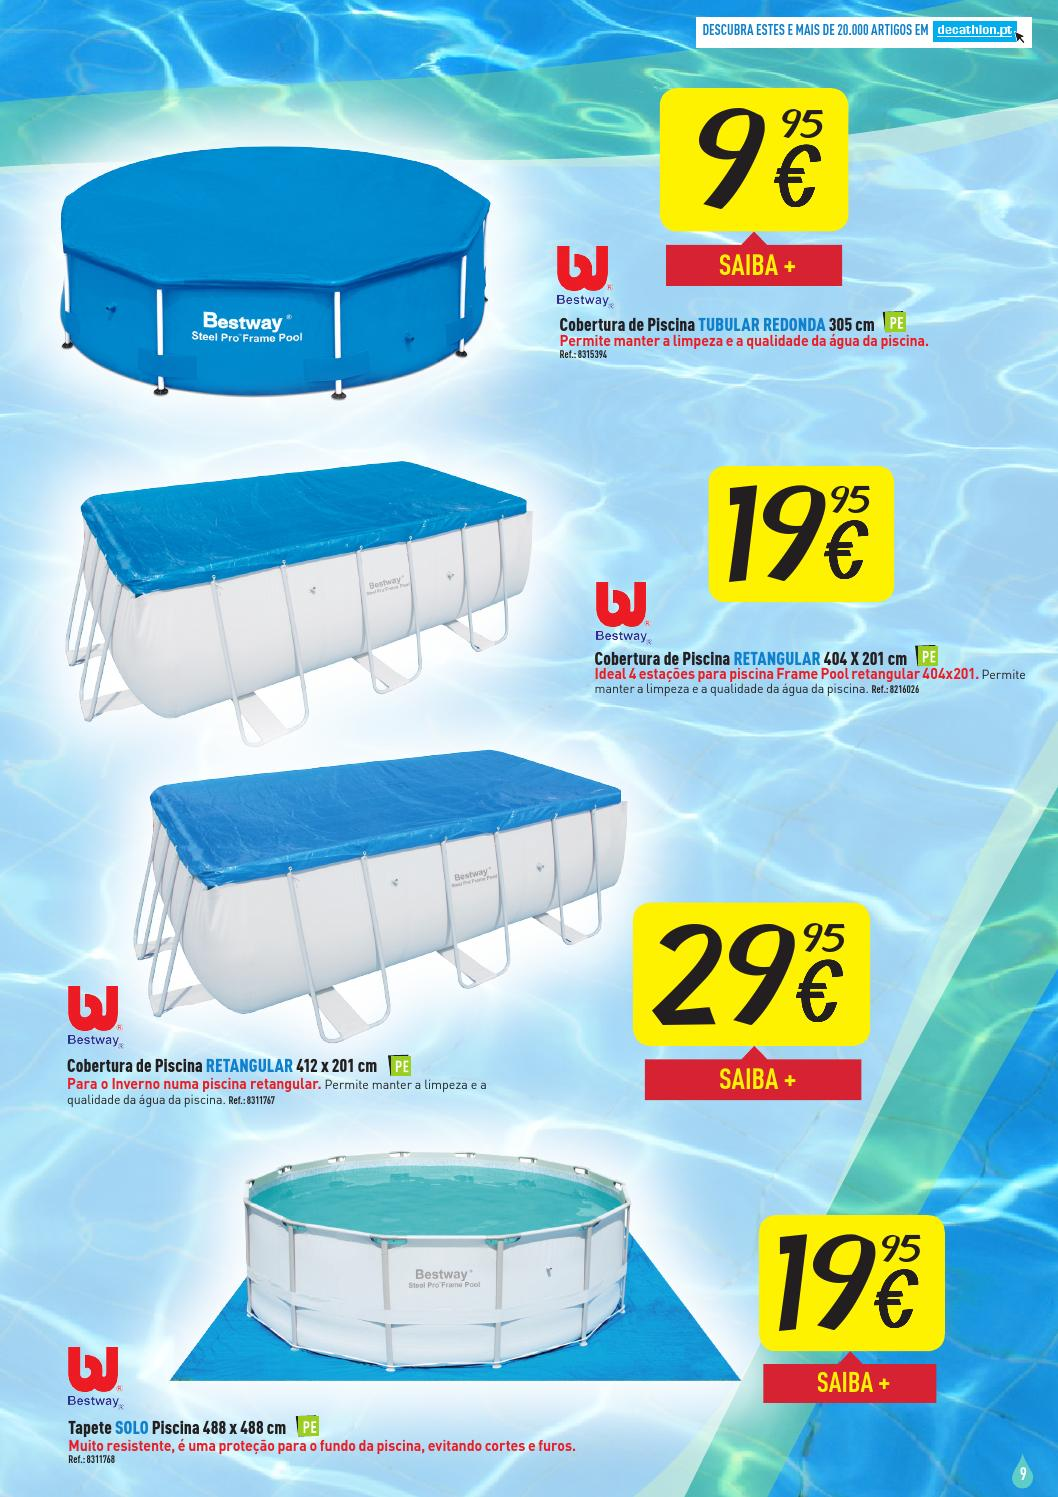 Oferta de piscinas decathlon ver o 2014 by decathlon for Ofertas de piscinas